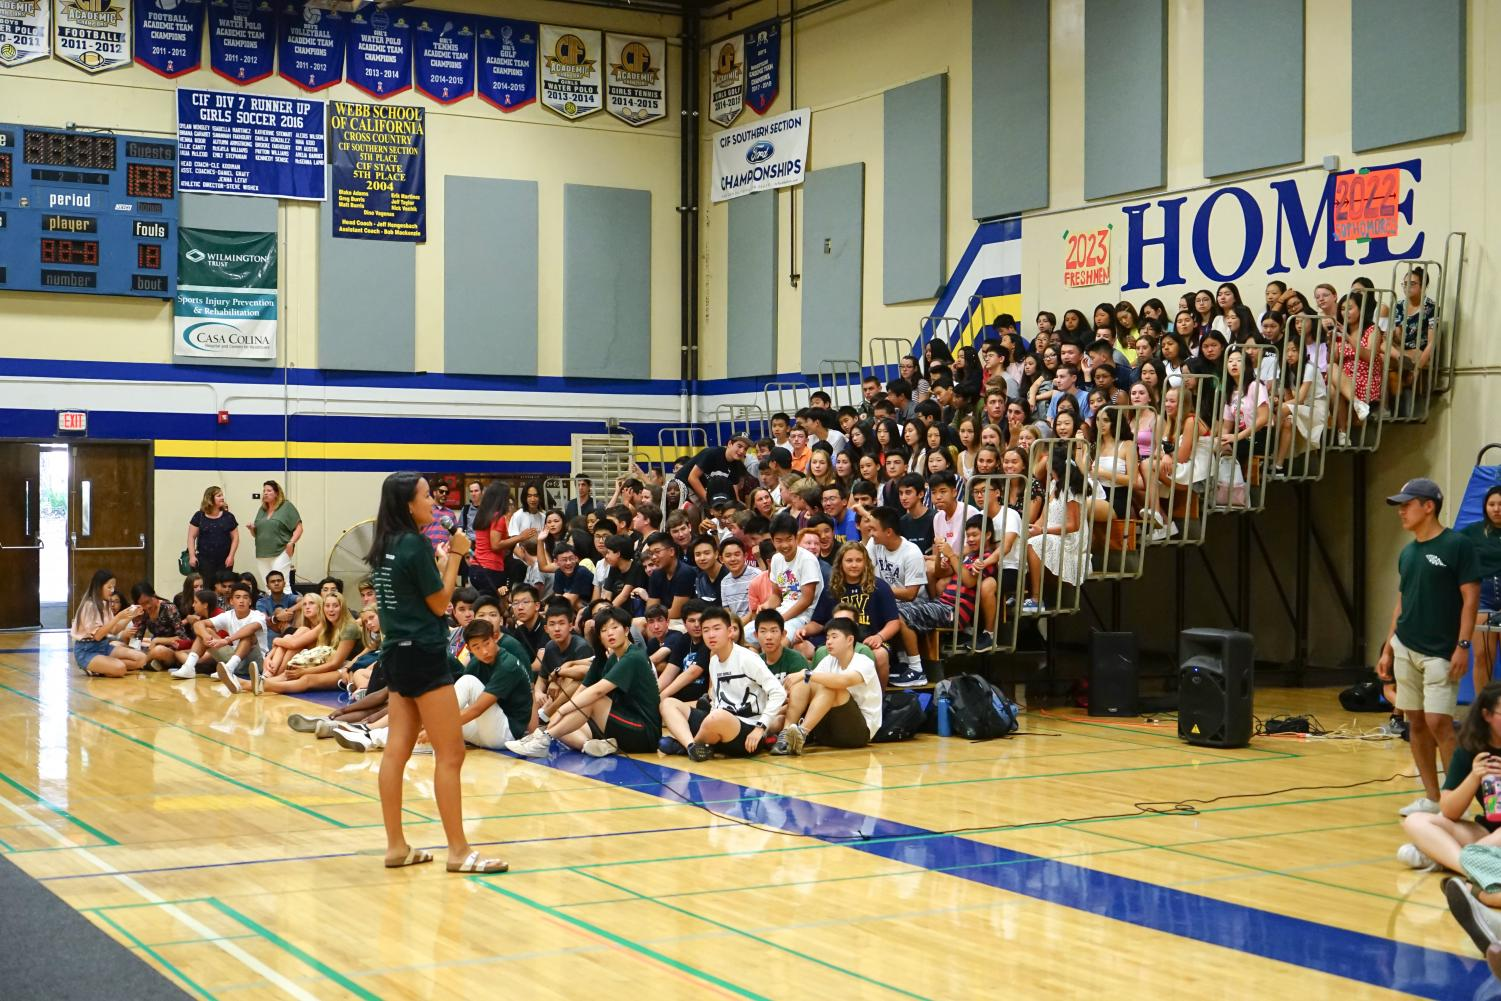 Sydney Wuu ('20), VWS All-School President, introduces the activities to students and faculty while the underclassmen wait excitedly for the games.